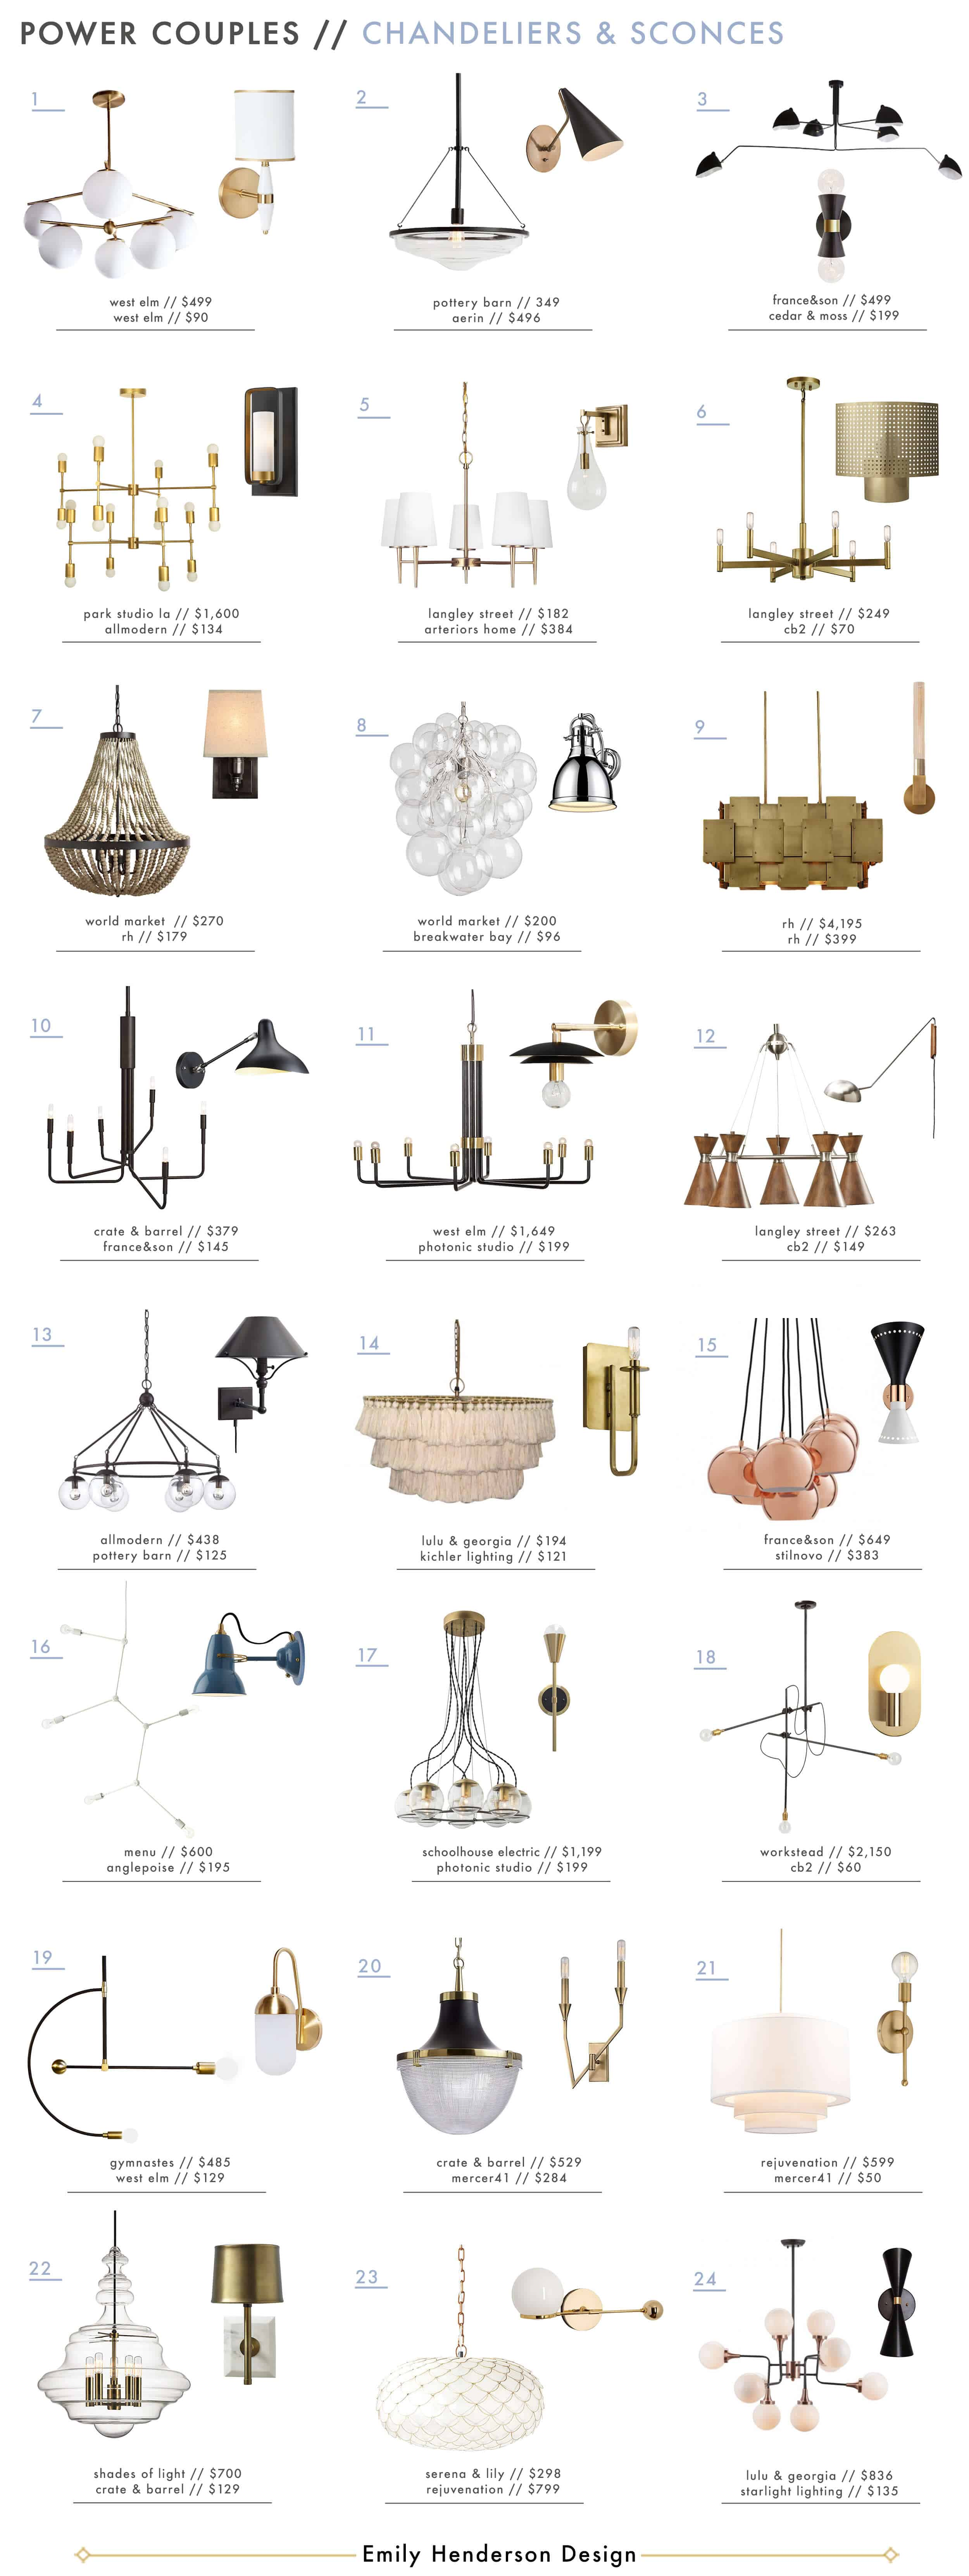 Emily Henderson Power Couples Chandelier Sconce Lighting Pairs Roundup